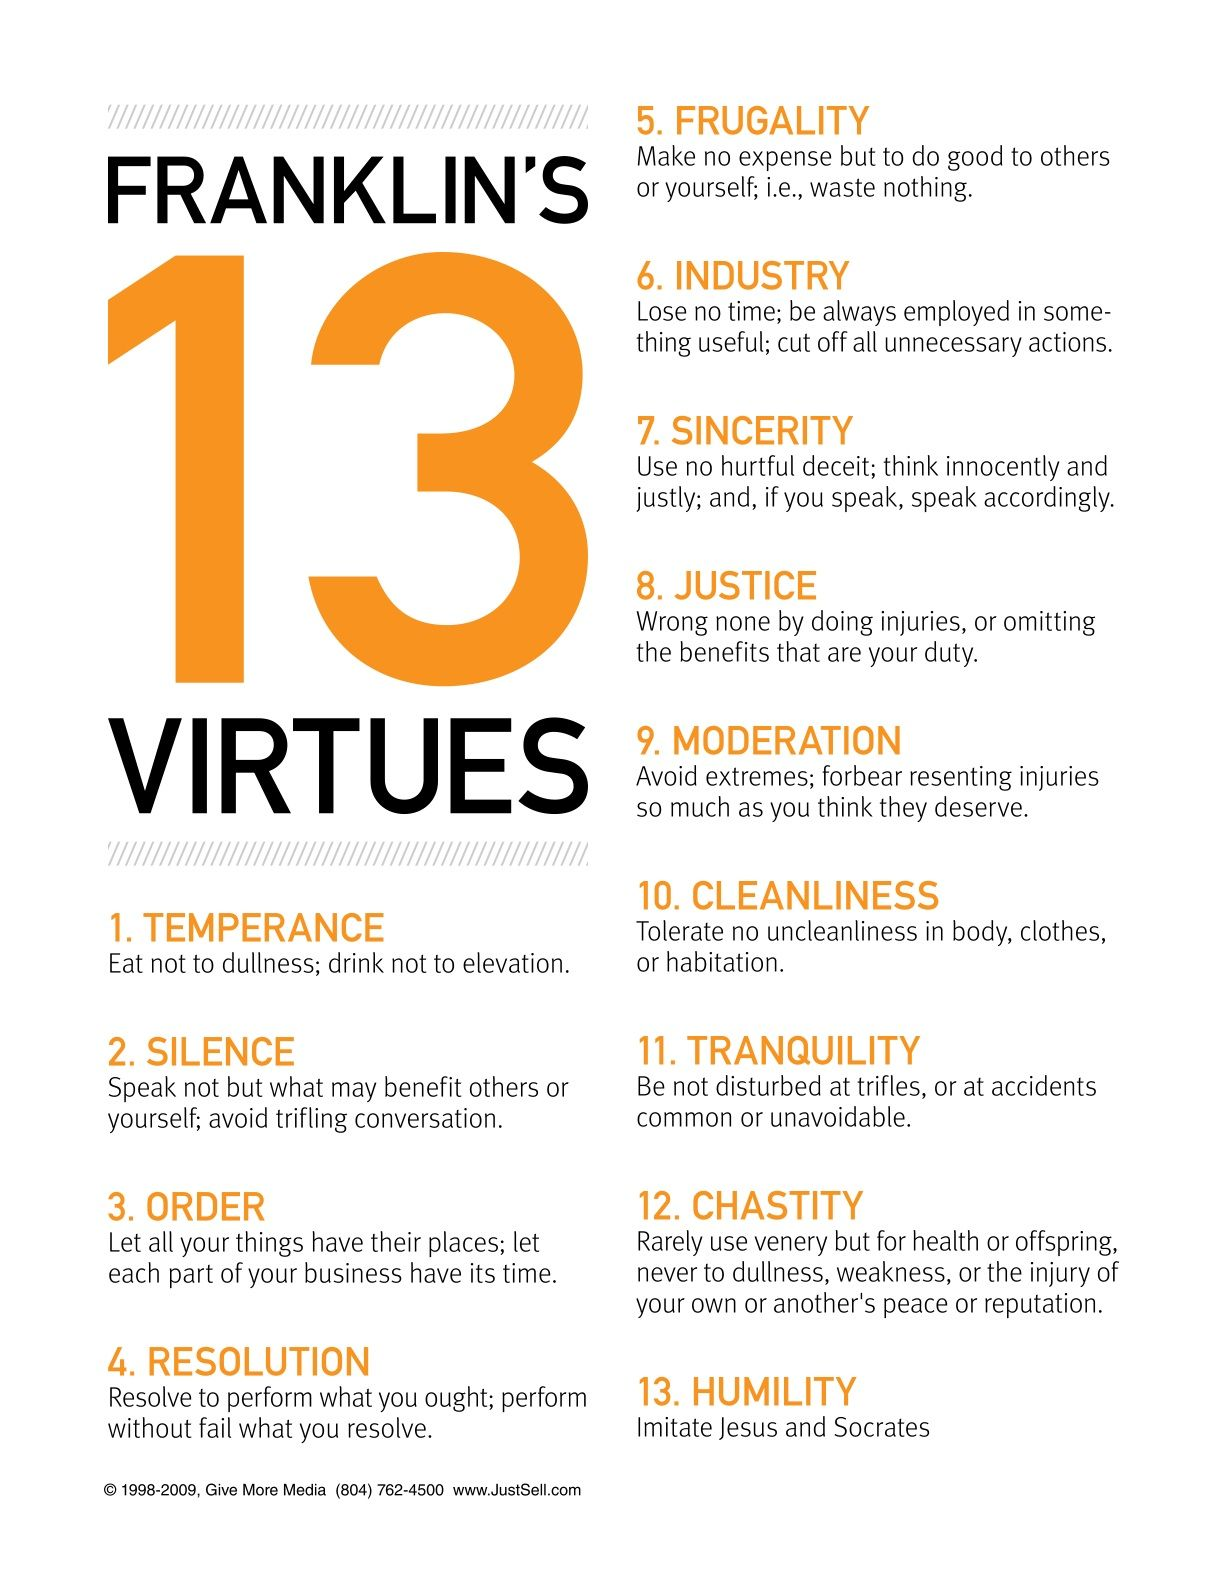 ben franklin s virtues my hometown franklin d after ben ben franklin s 13 virtues my hometown franklin d after ben franklin which